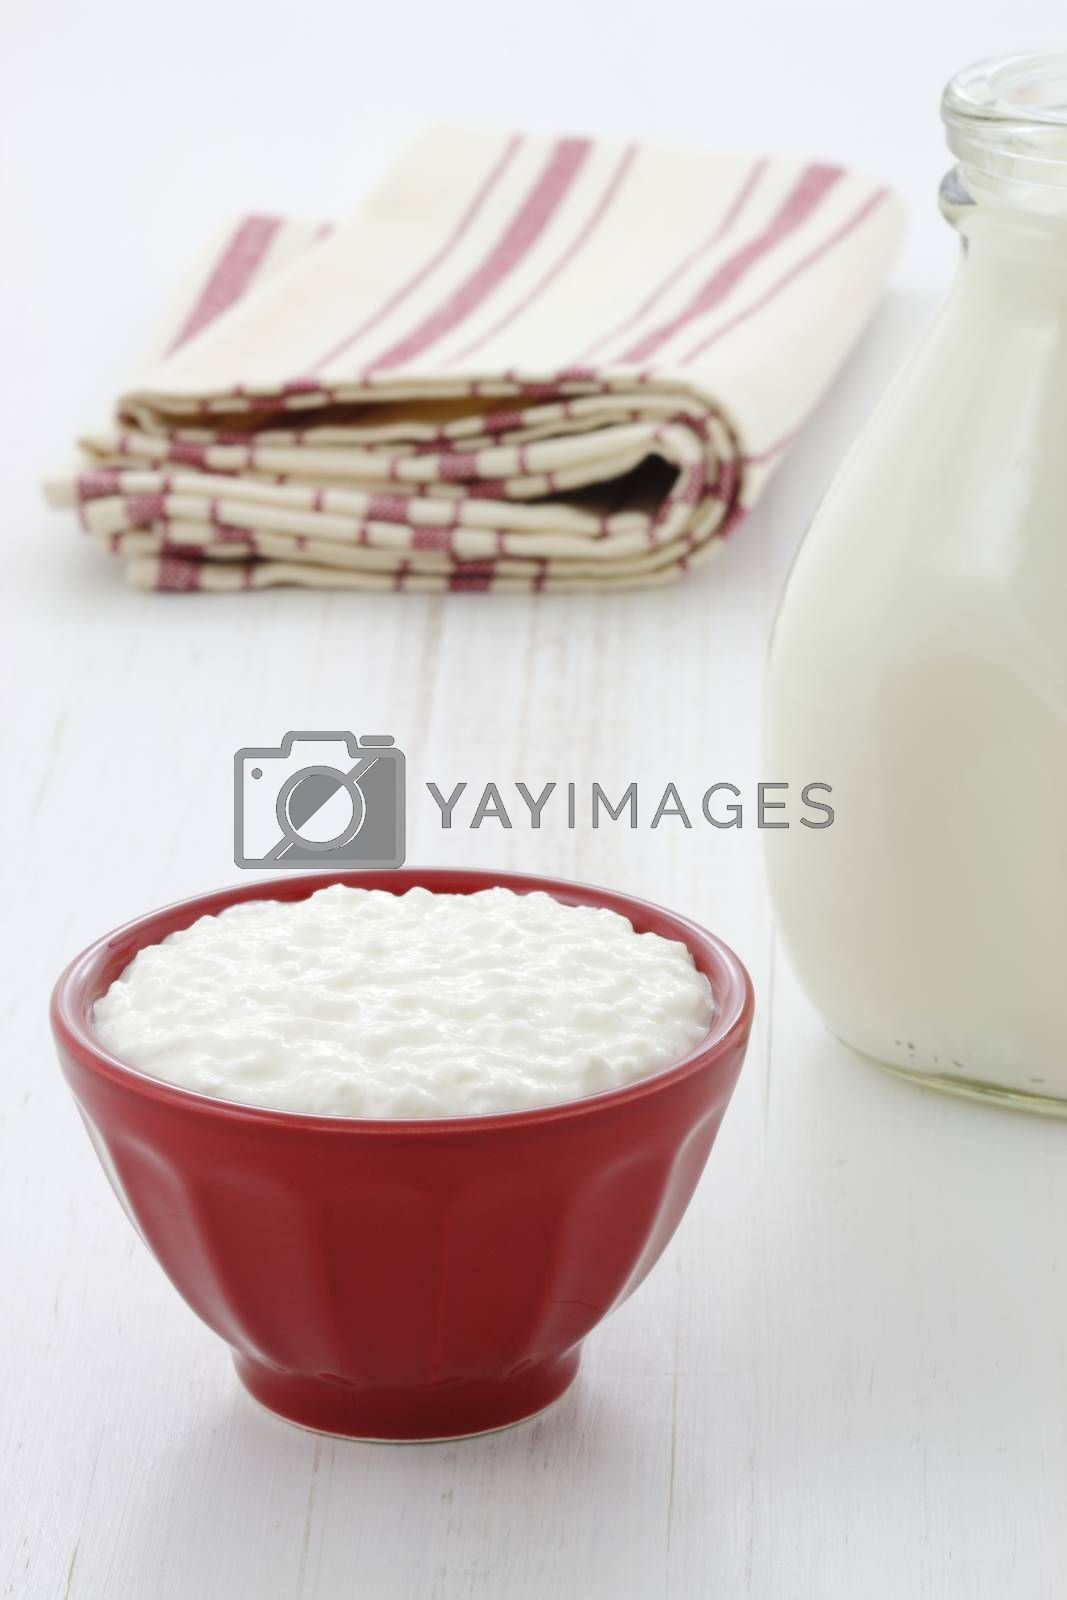 Cottage cheese and fresh milk on vintage french table linen.